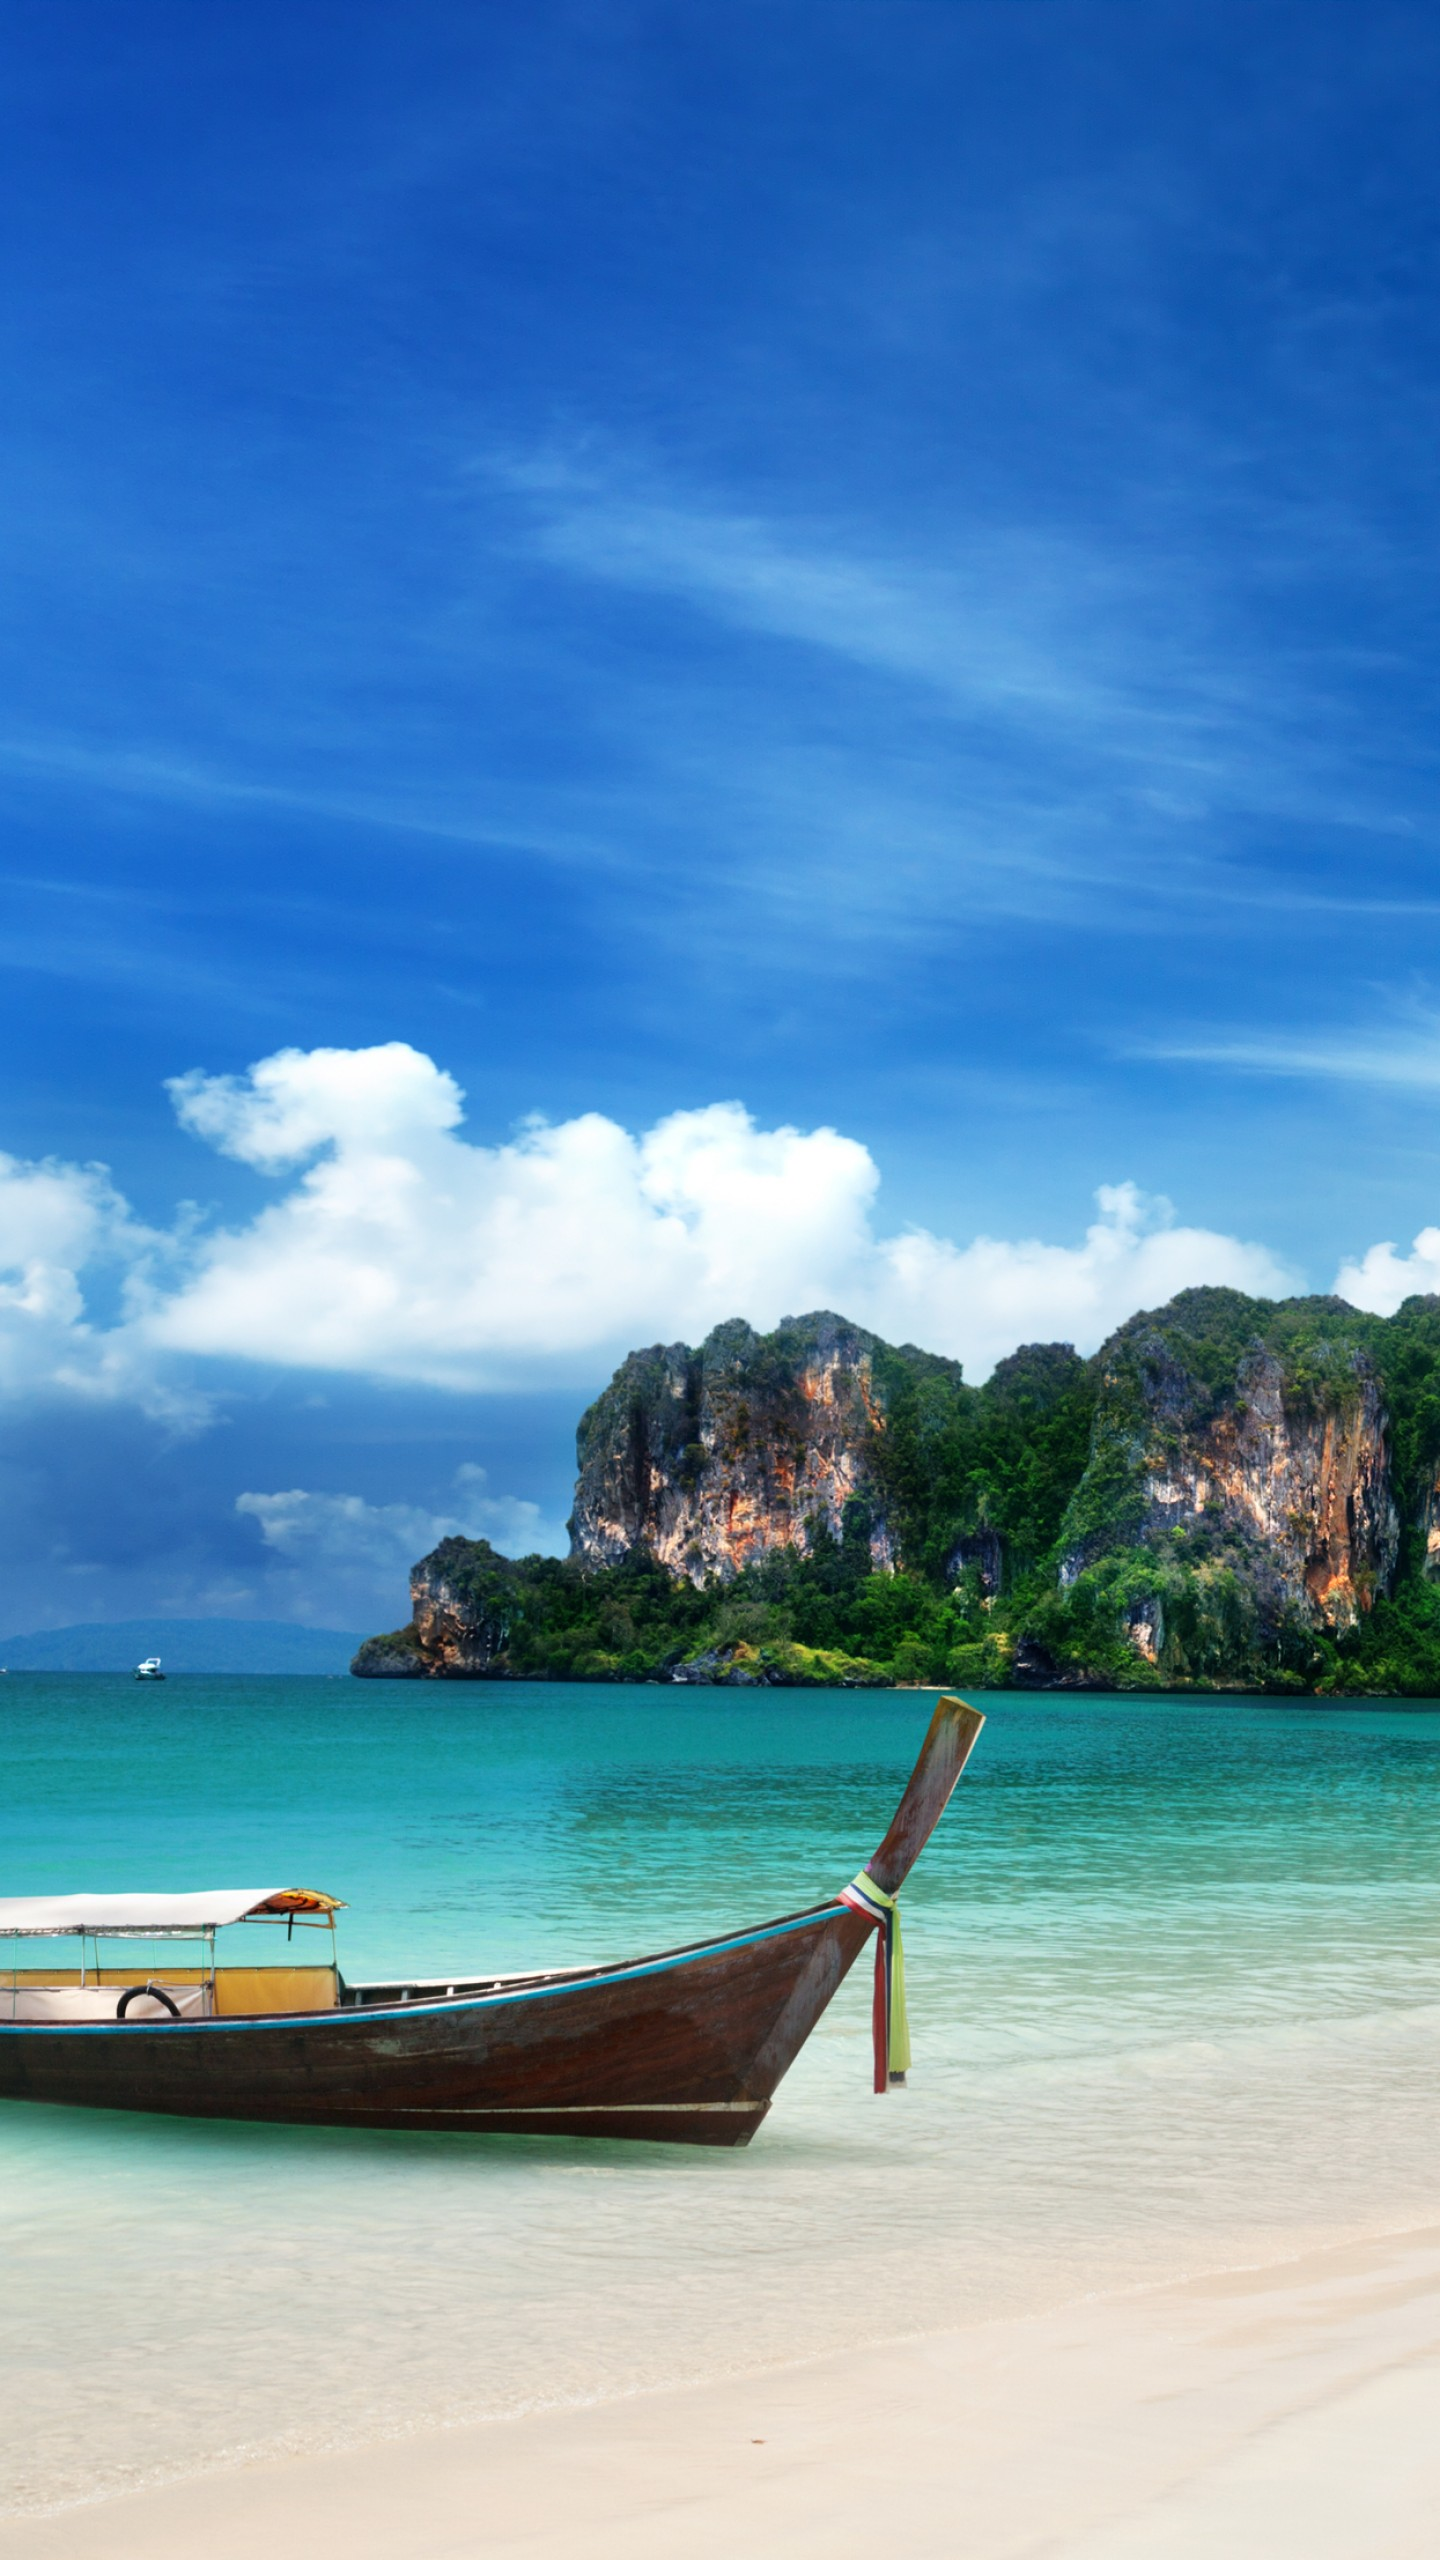 Wallpaper Krabi Beach Hd 4k Wallpaper Thailand Best